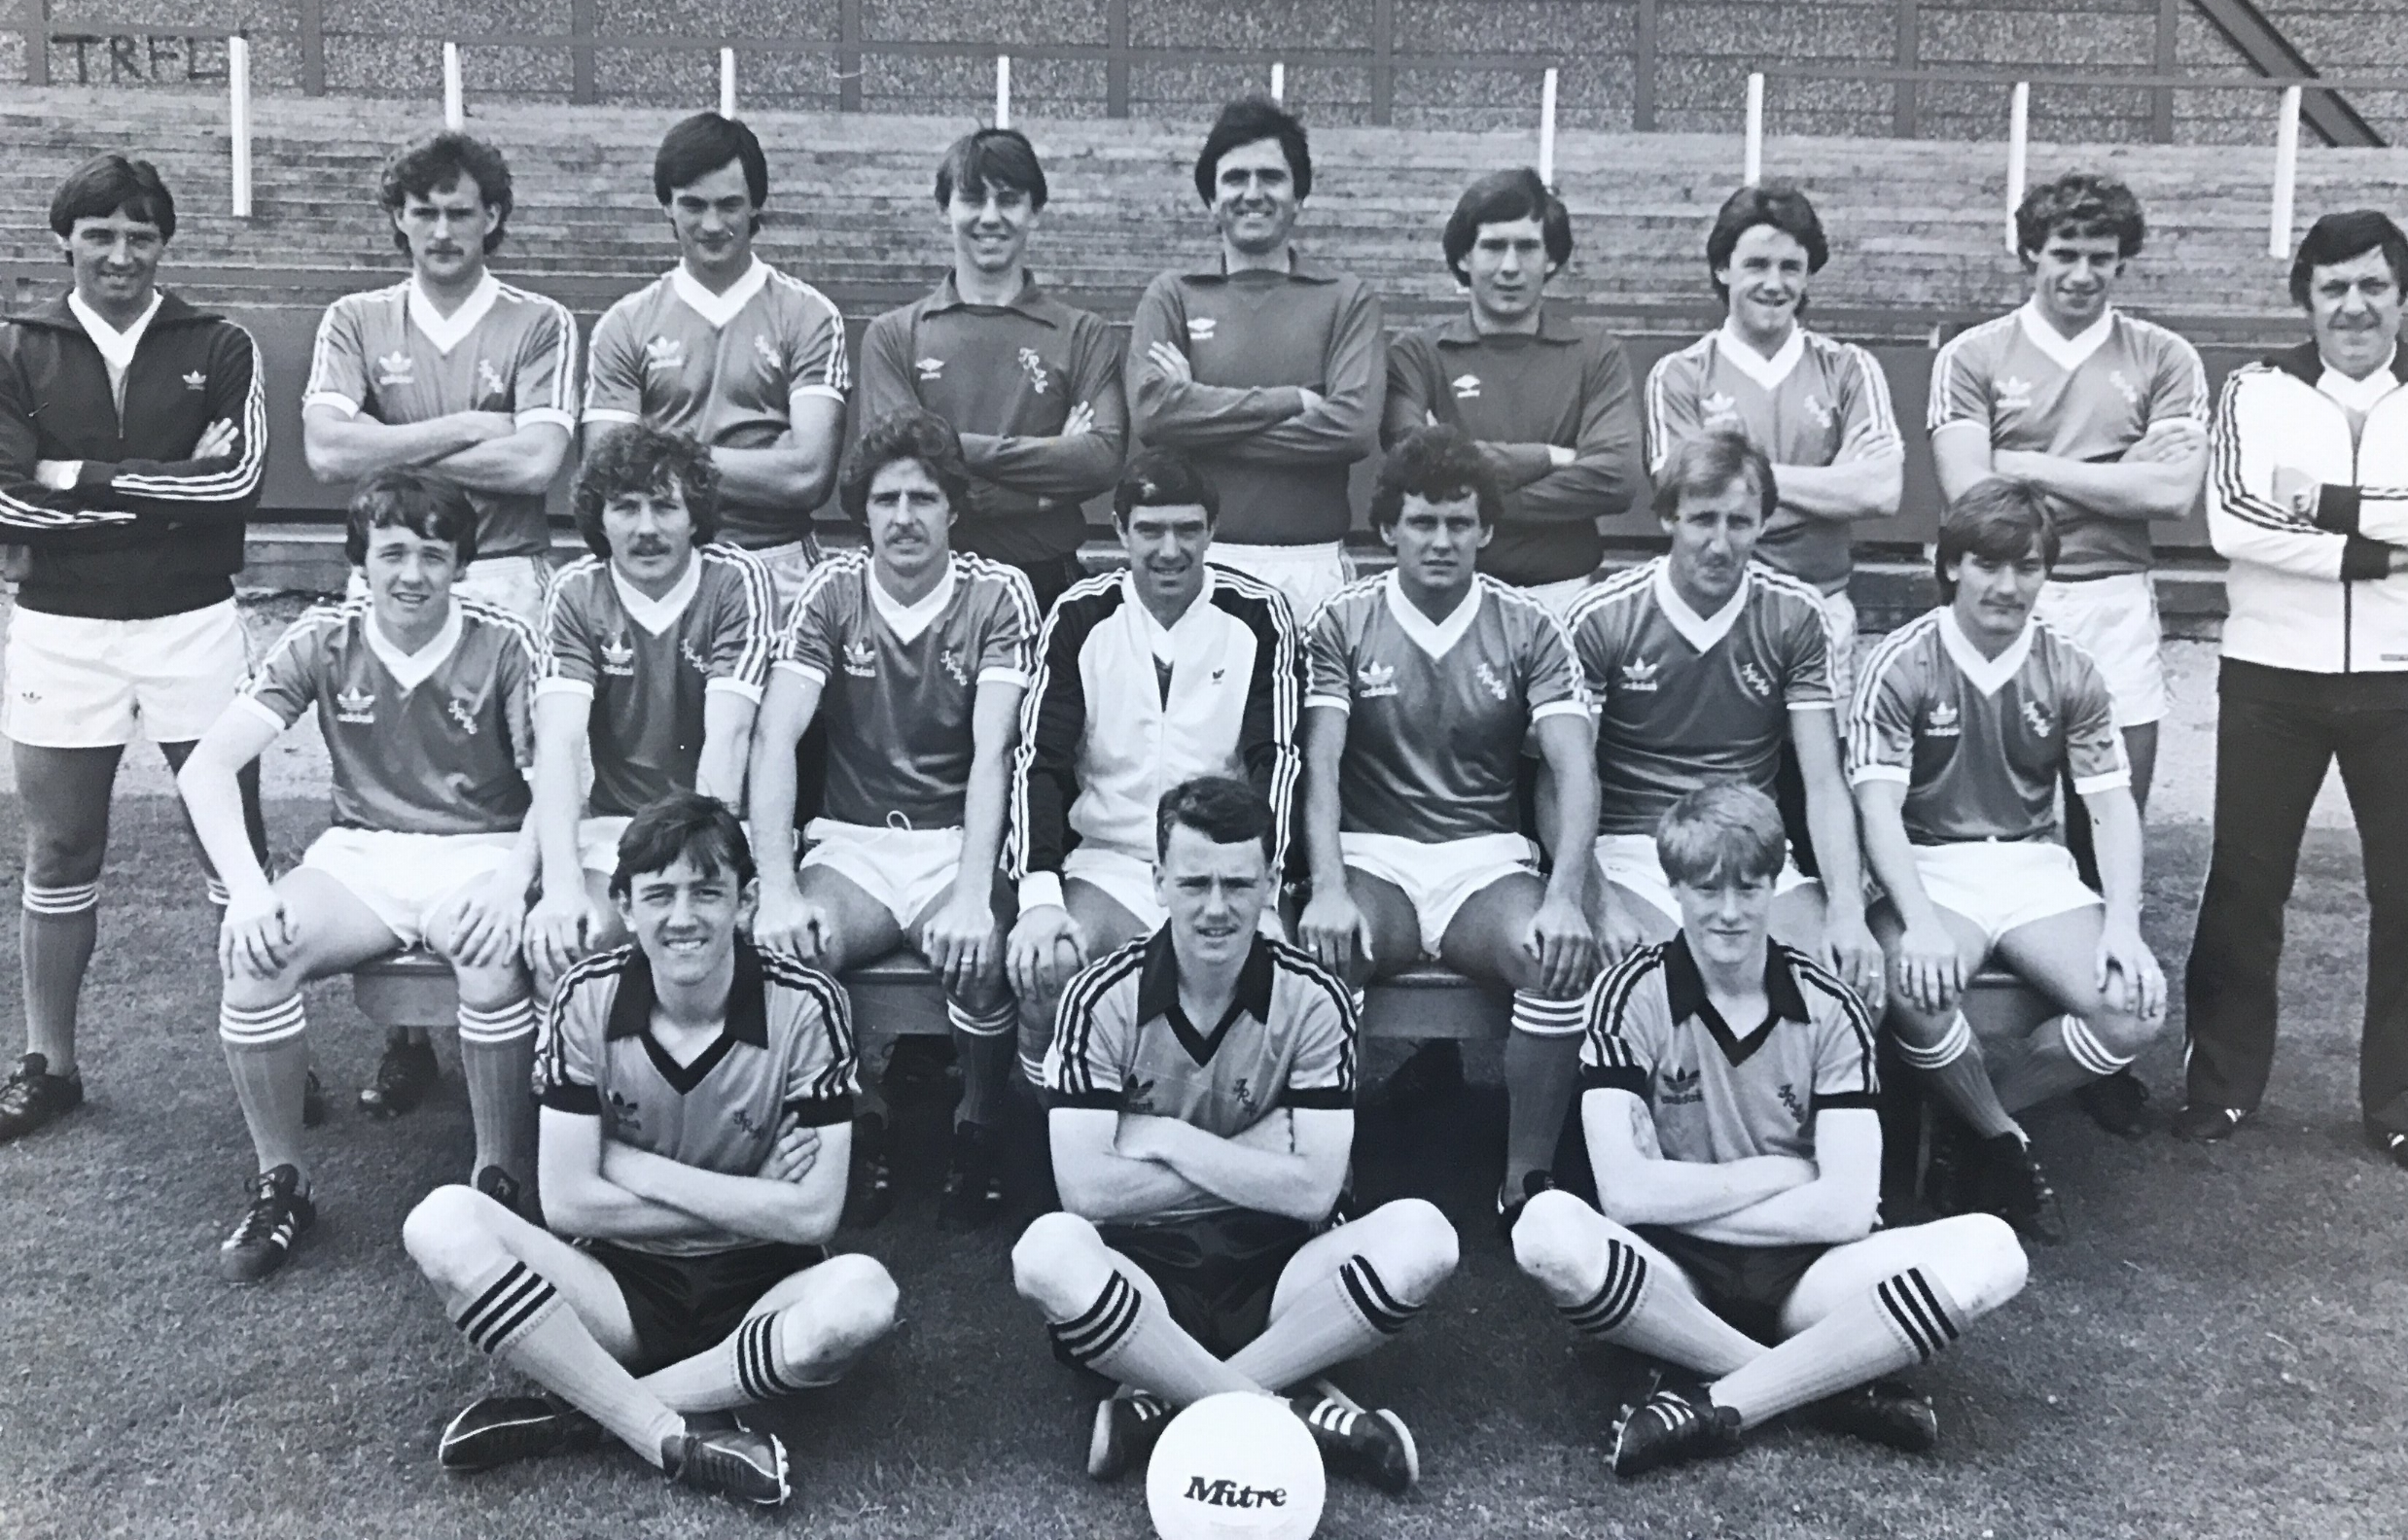 Tranmere Rovers 1st August 1981. Having just joined my local team as a 16 year old Apprentice, I'm in the goalkeeper shirt between Derek Mountfield and Dickie Johnson.1st Year Professional Neville Powell sitting on the left.